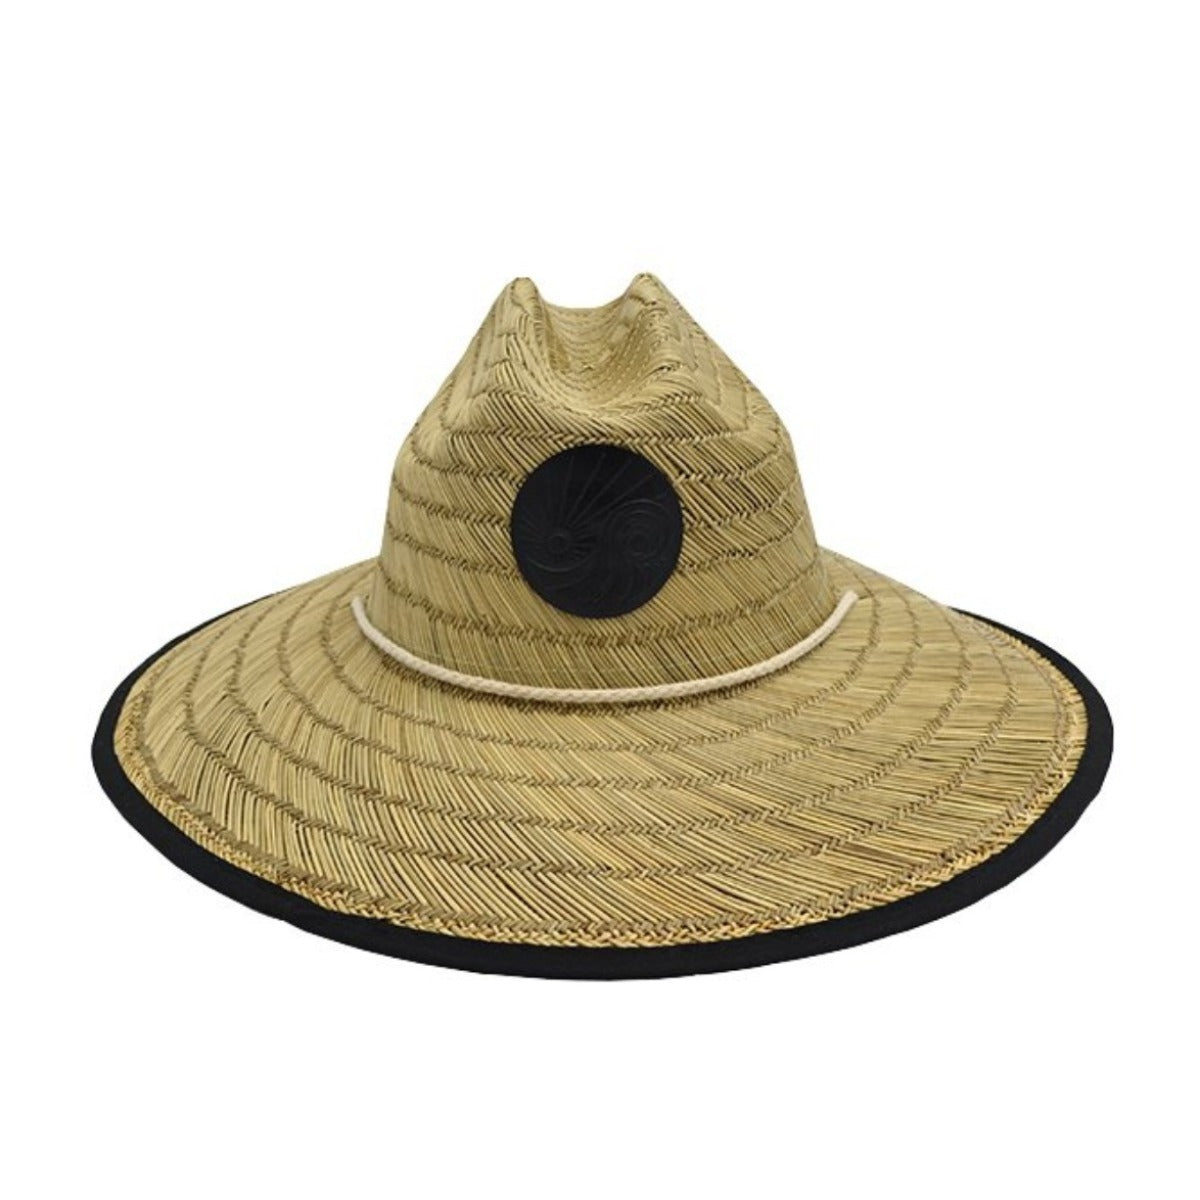 Khaki Lifeguard Straw hat with black trimming and SDTC's Logo lifted on a Black patch and a string around the brim to tie around your neck